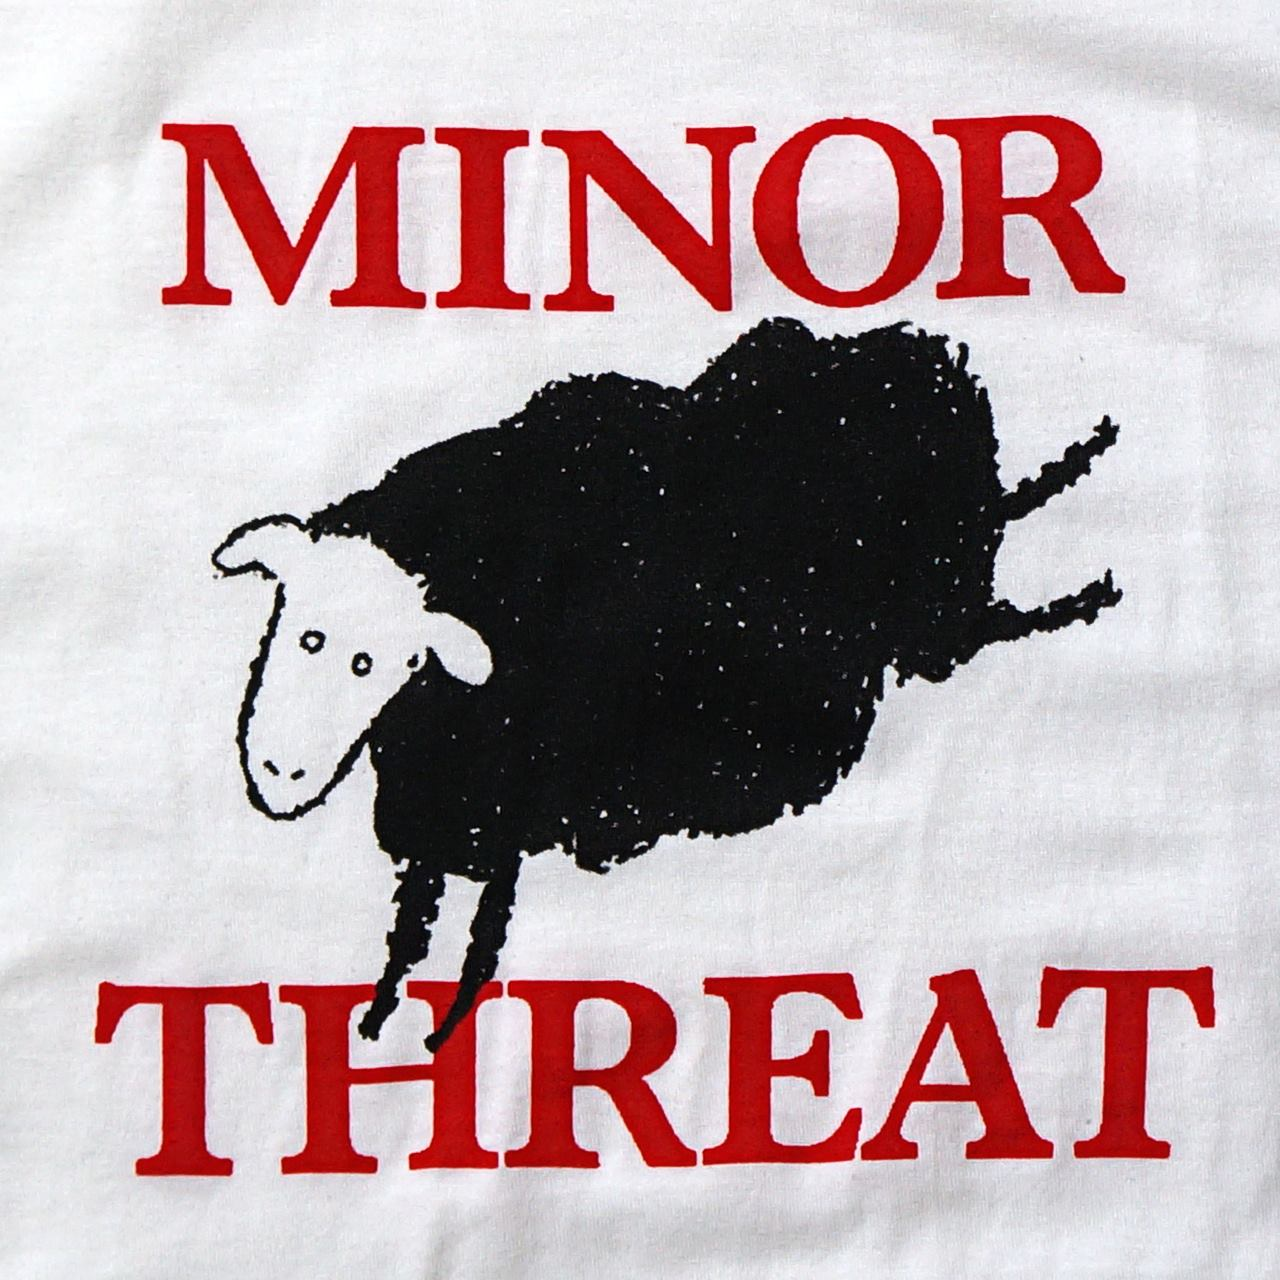 MINOR THREAT マイナースレット Tシャツ Black Sheep-White